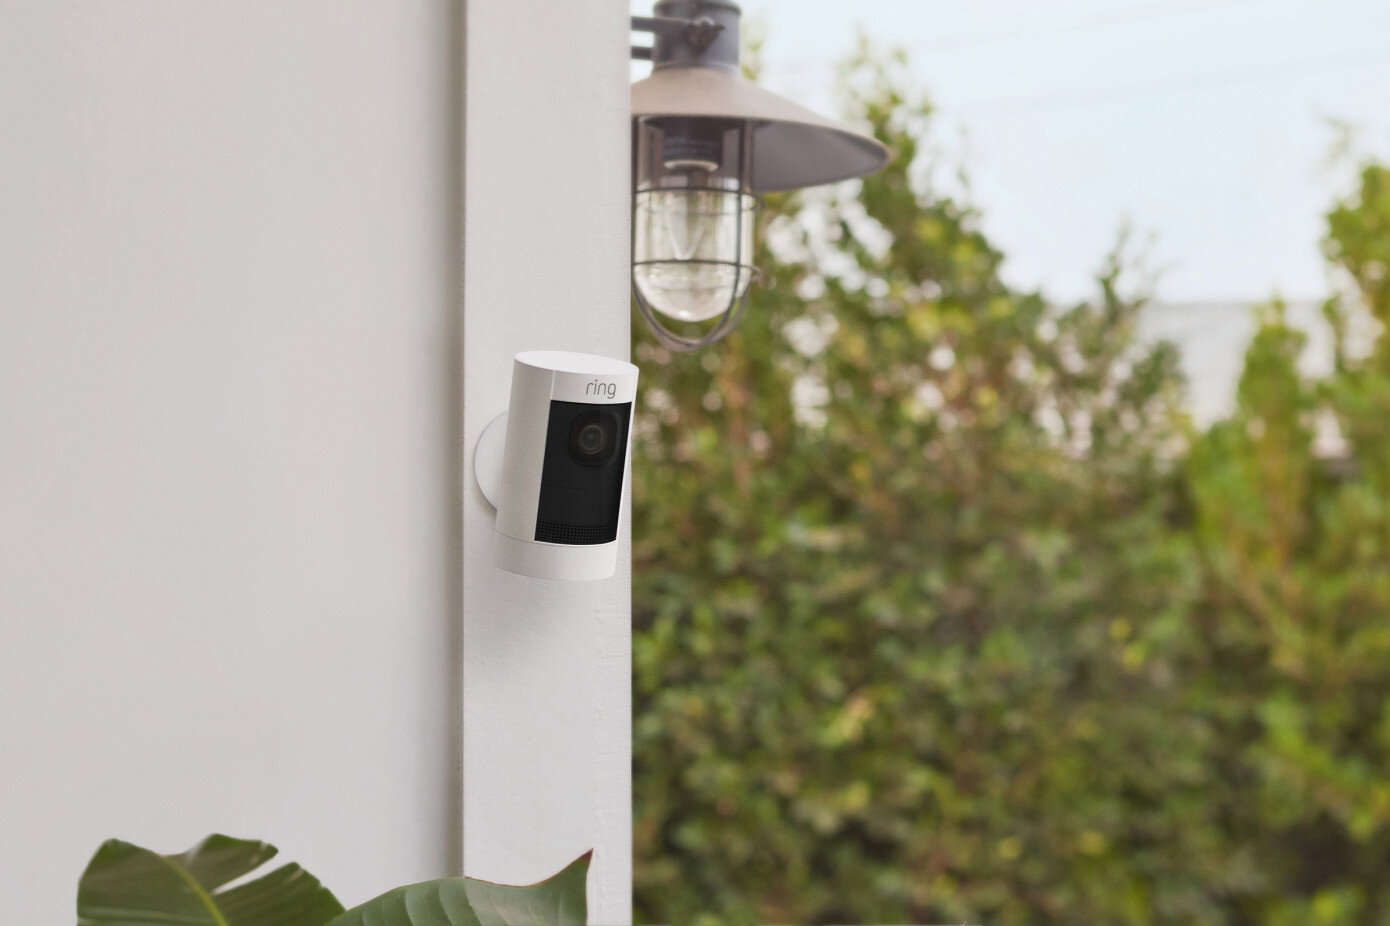 Secure Your Home With The Latest In Smart Home Automation